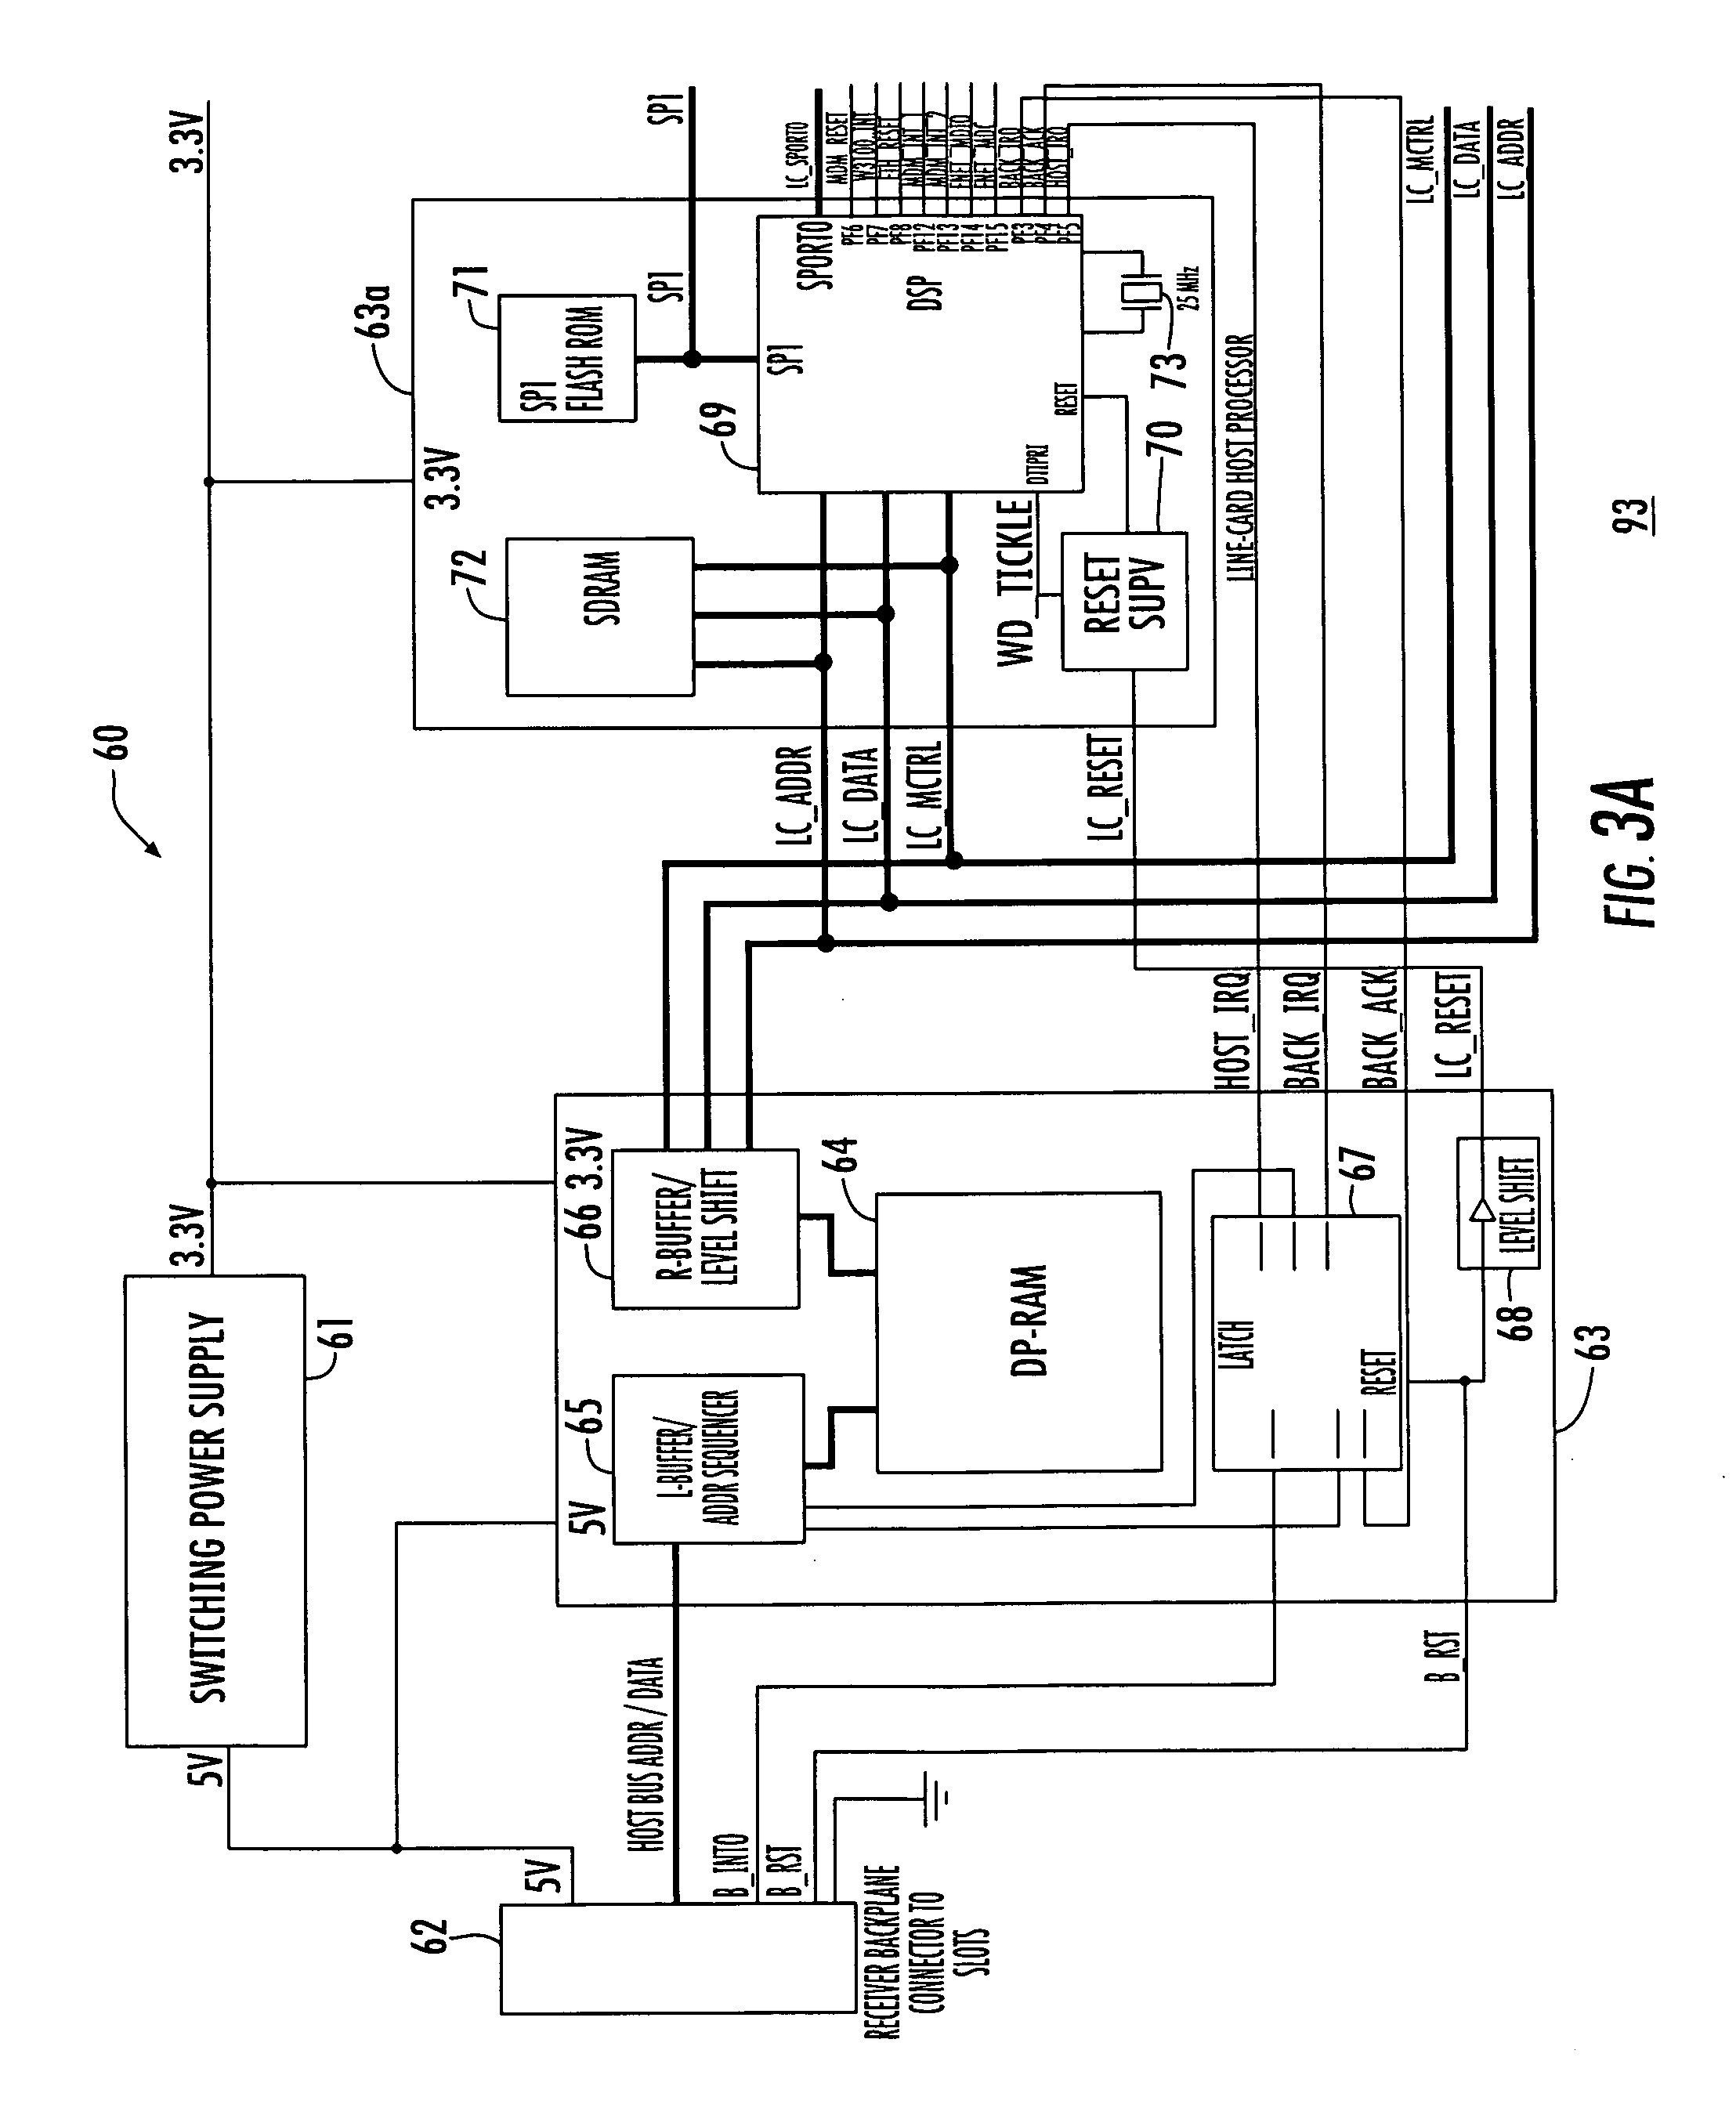 medium resolution of unique fire alarm system control module wiring diagram diagram fire alarm control module wiring diagram